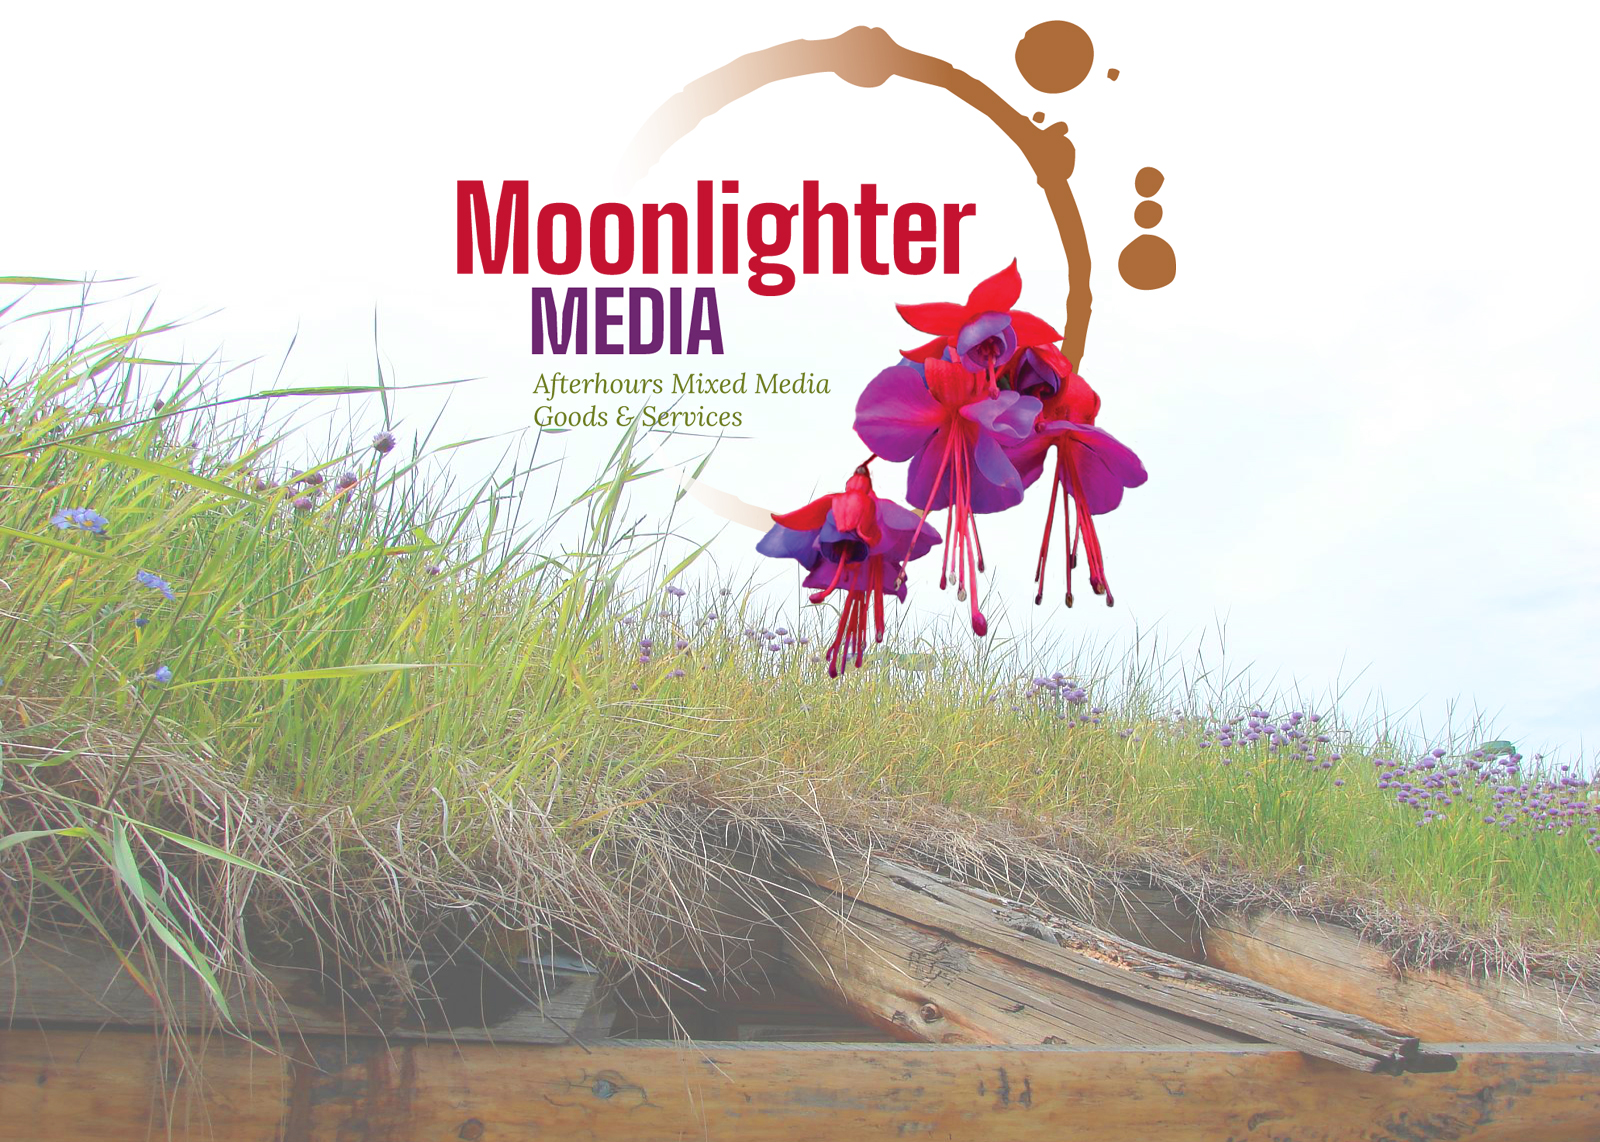 Moonlighter Media - mixed media goods and services